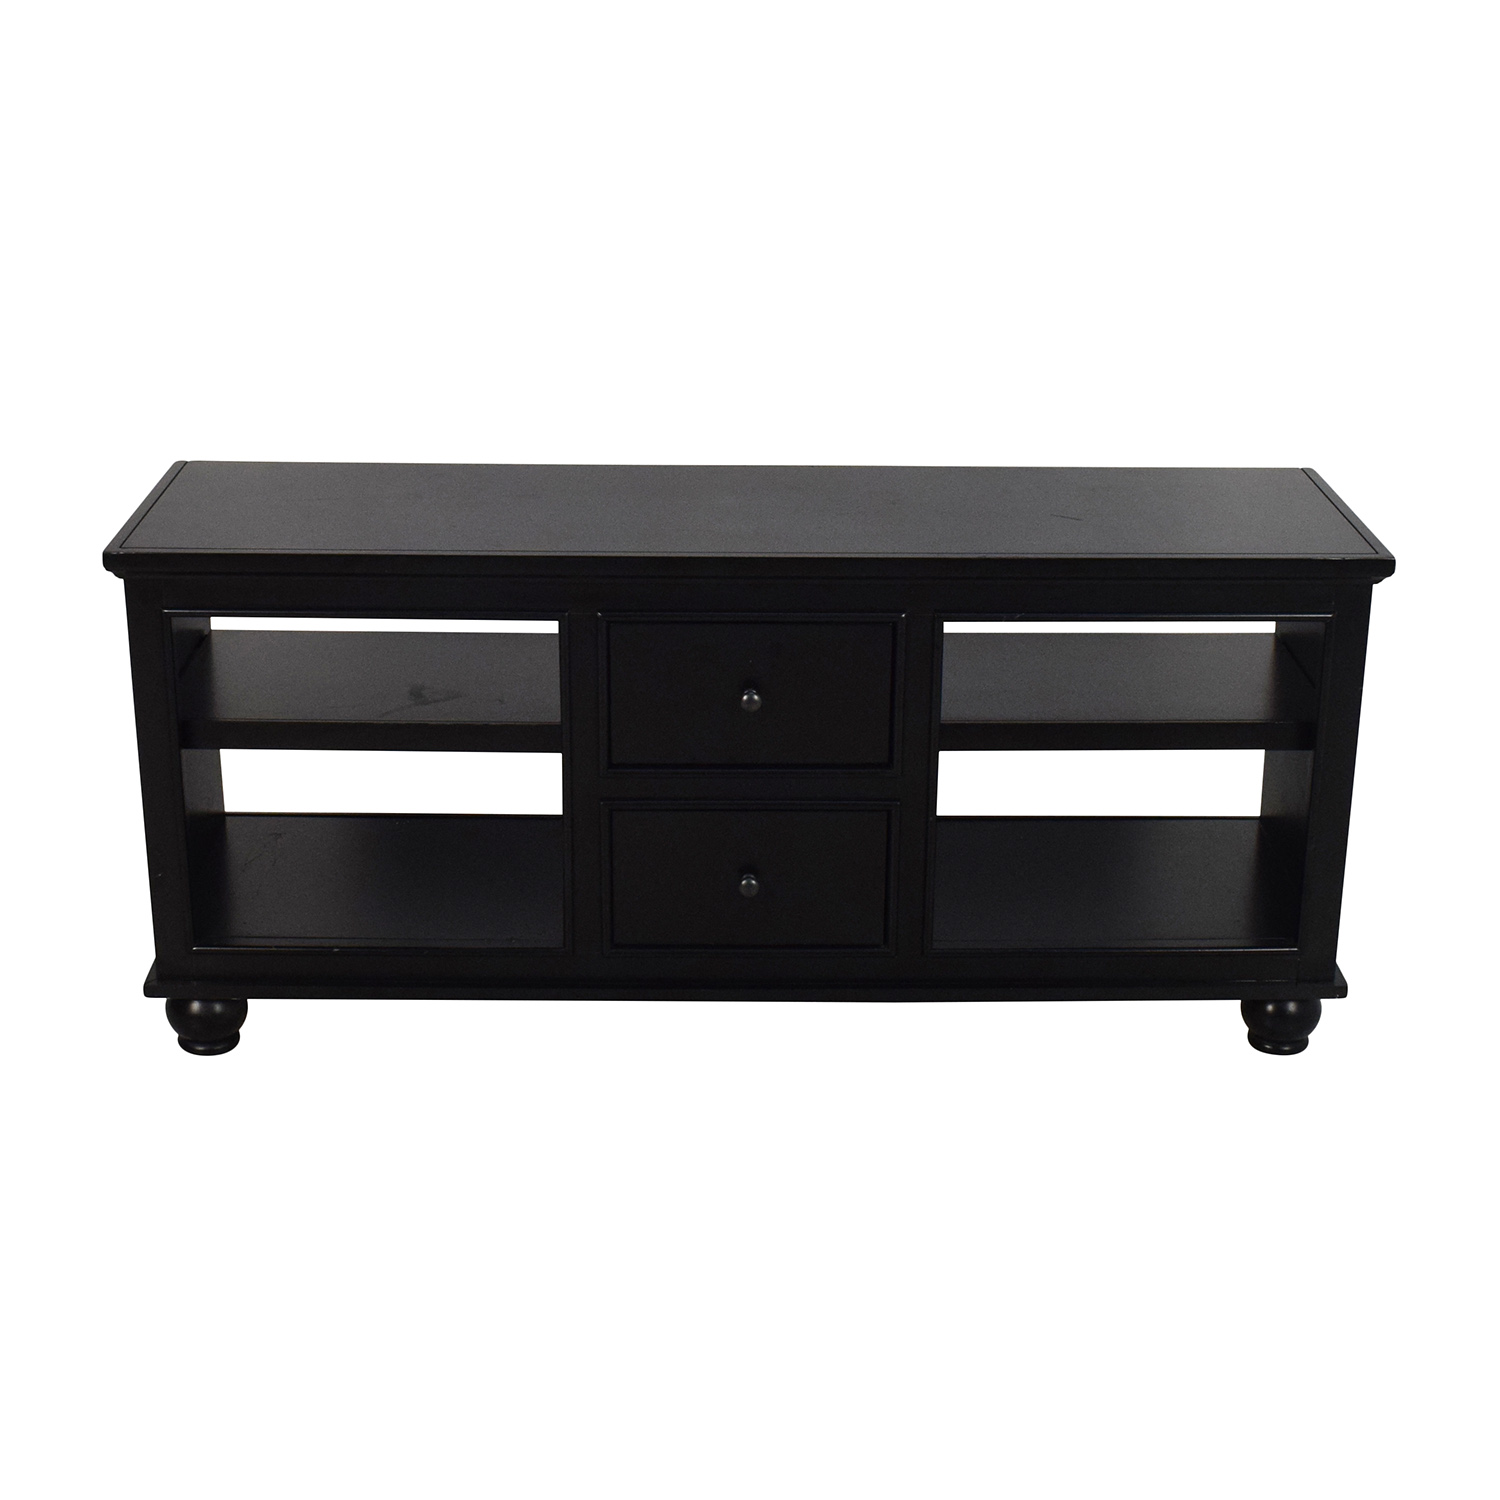 buy Black Wooden Media Stand with 2 Drawers Storage